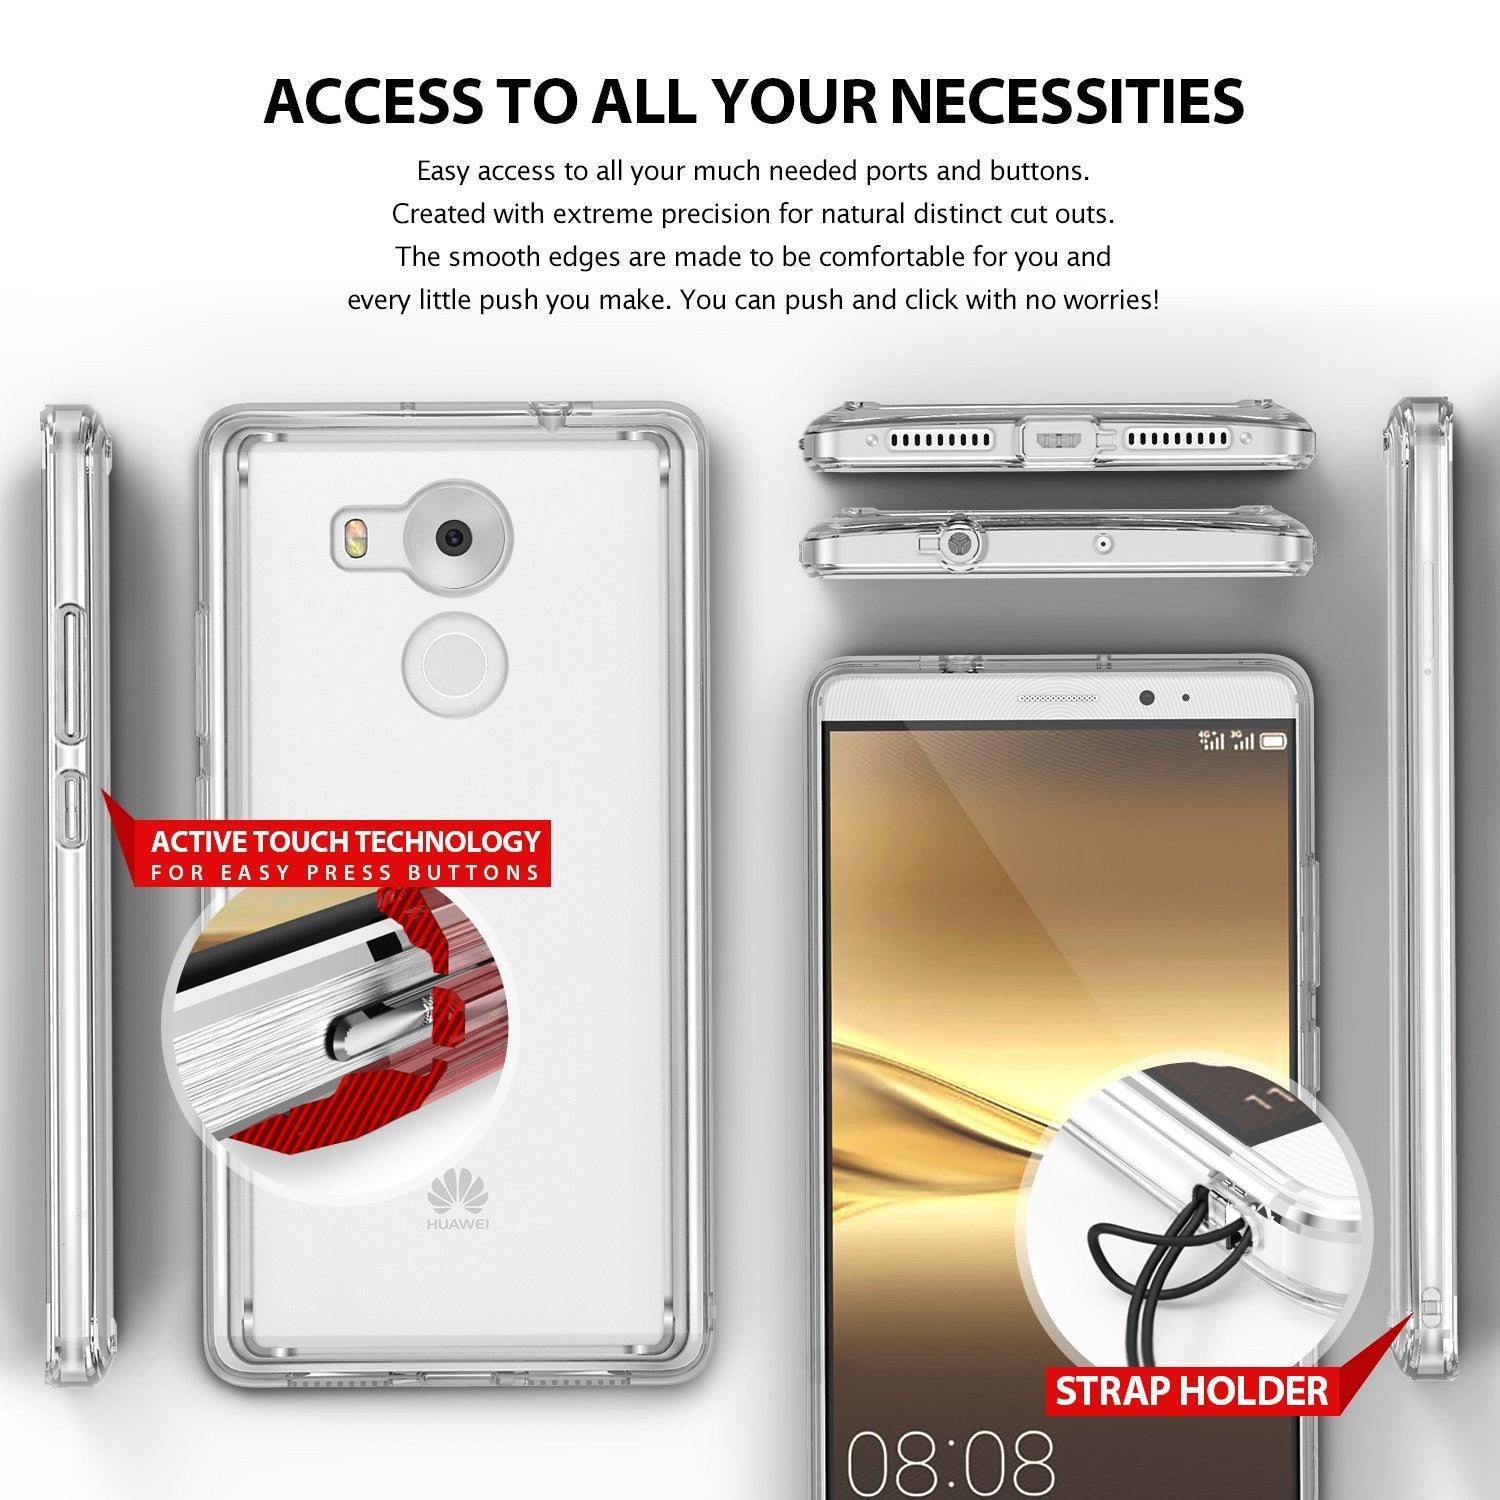 access to your necessities